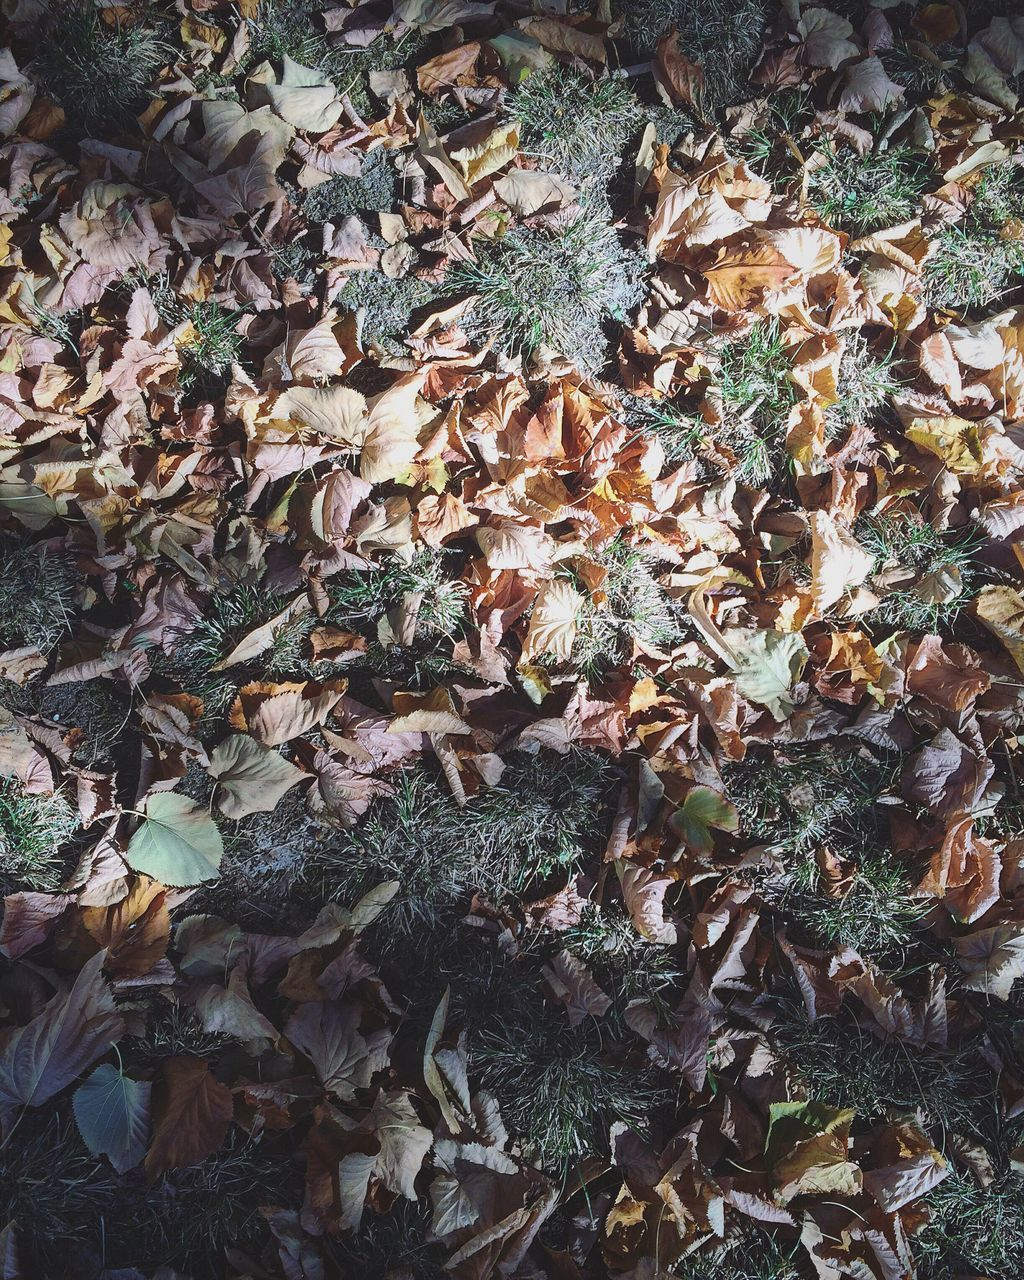 leaf, autumn, change, dry, leaves, nature, fallen, abundance, day, outdoors, no people, high angle view, field, plant, full frame, ivy, maple leaf, growth, fragility, close-up, backgrounds, forest, beauty in nature, maple